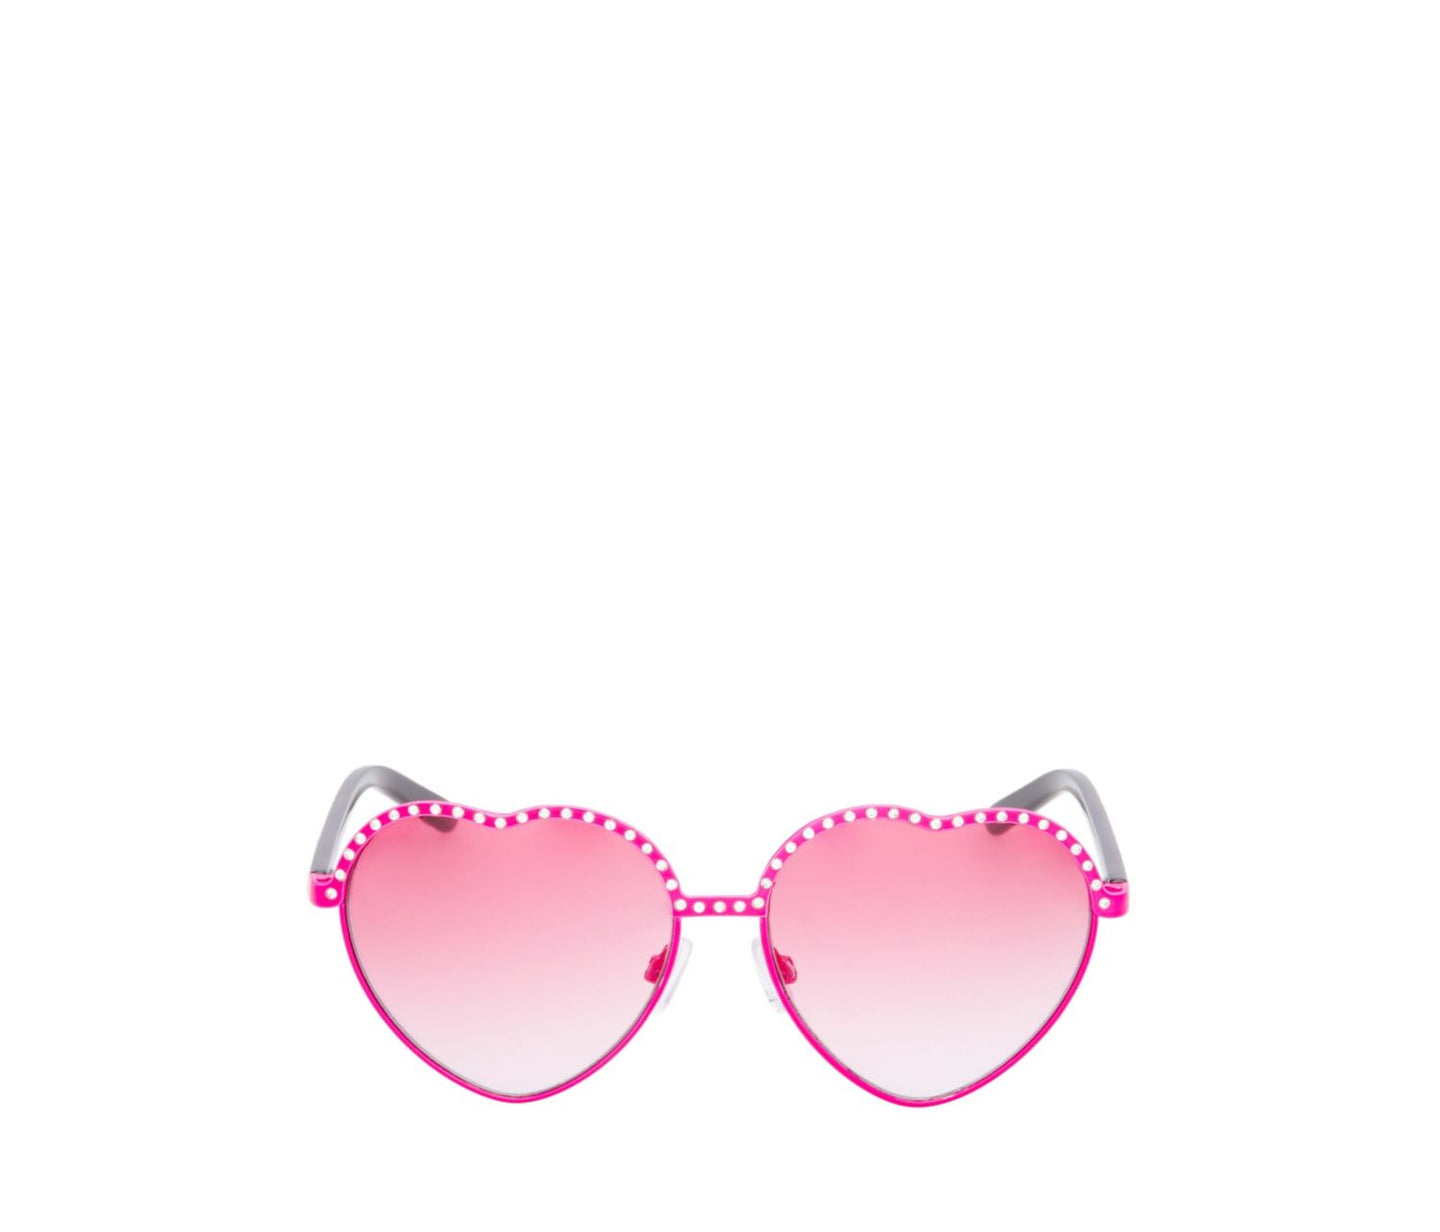 RHINESTONE TOPPED HEART SUNGLASSES PINK - ACCESSORIES - Betsey Johnson